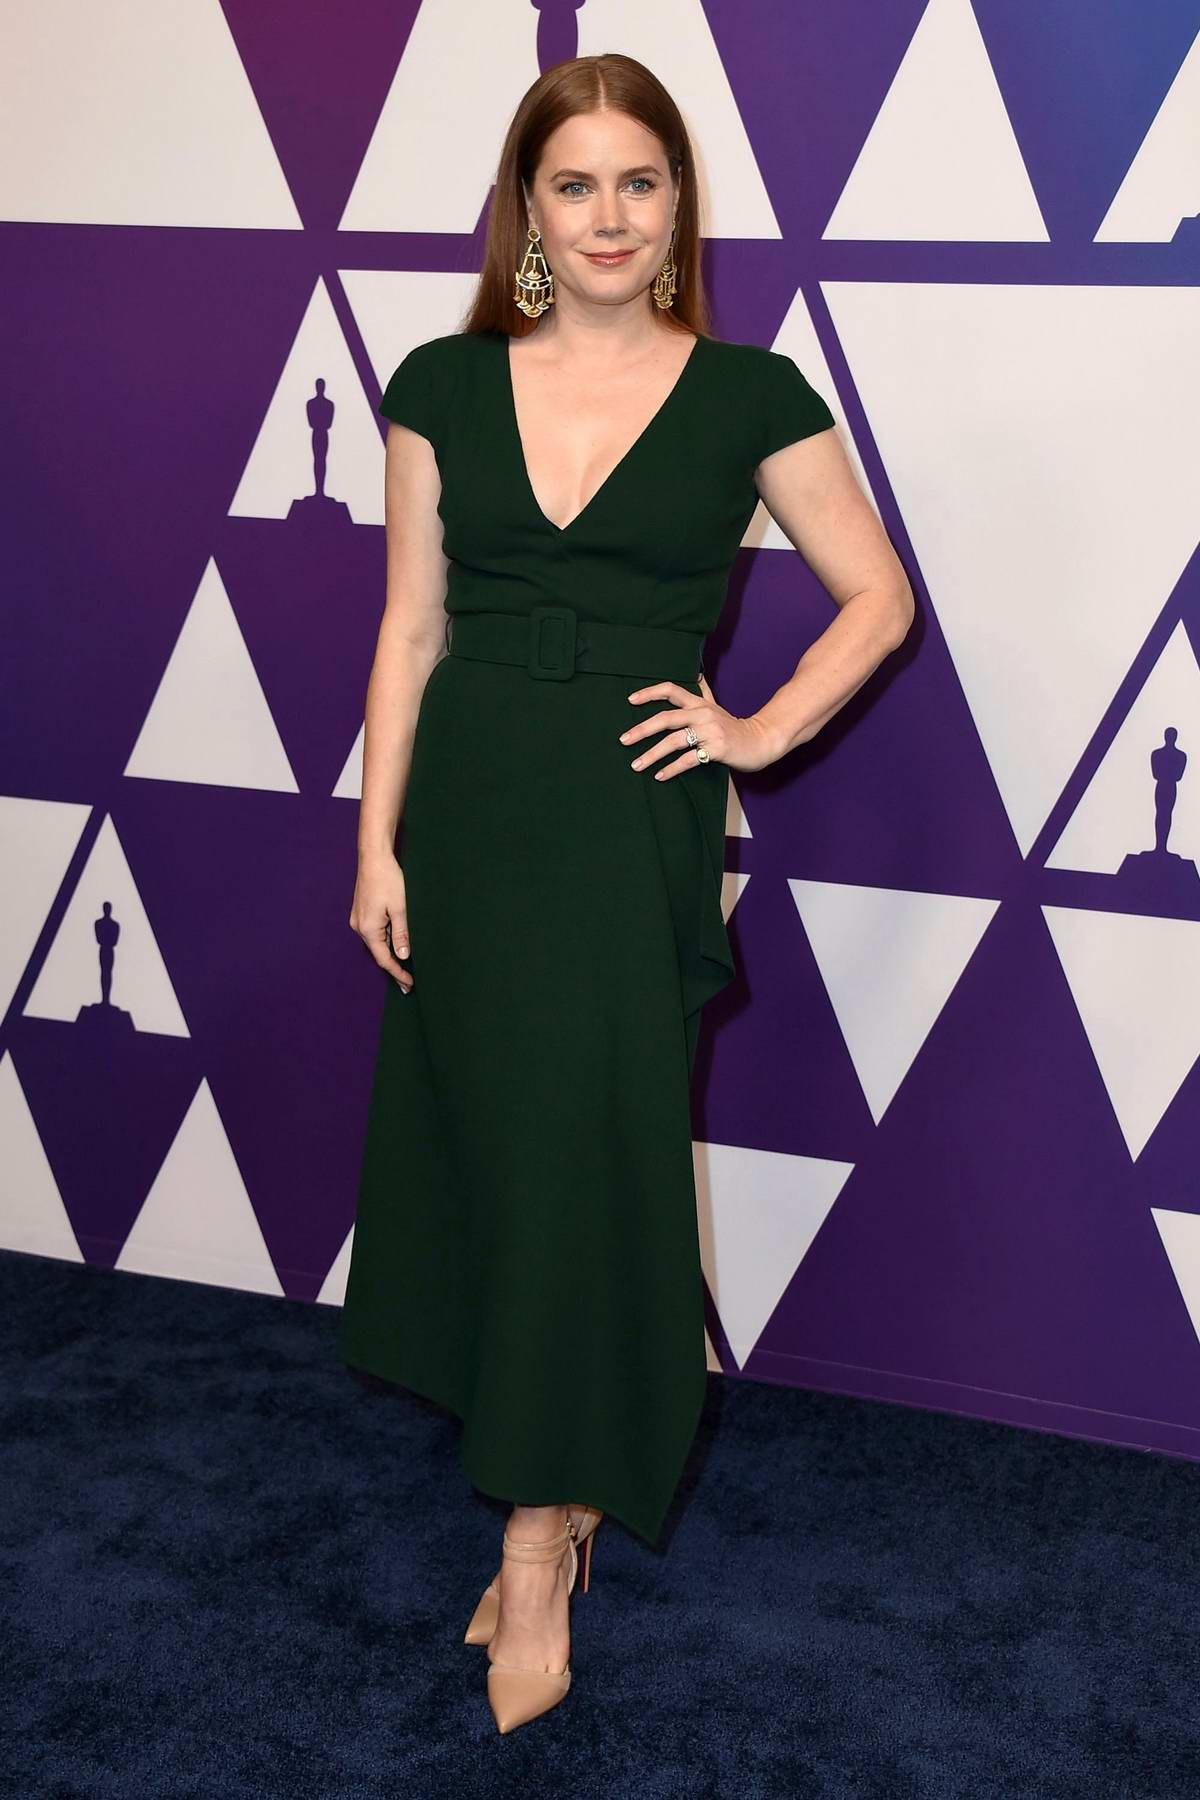 Amy Adams attends the 91st Oscars Nominees Luncheon at The Beverly Hilton Hotel in Beverly Hills, California